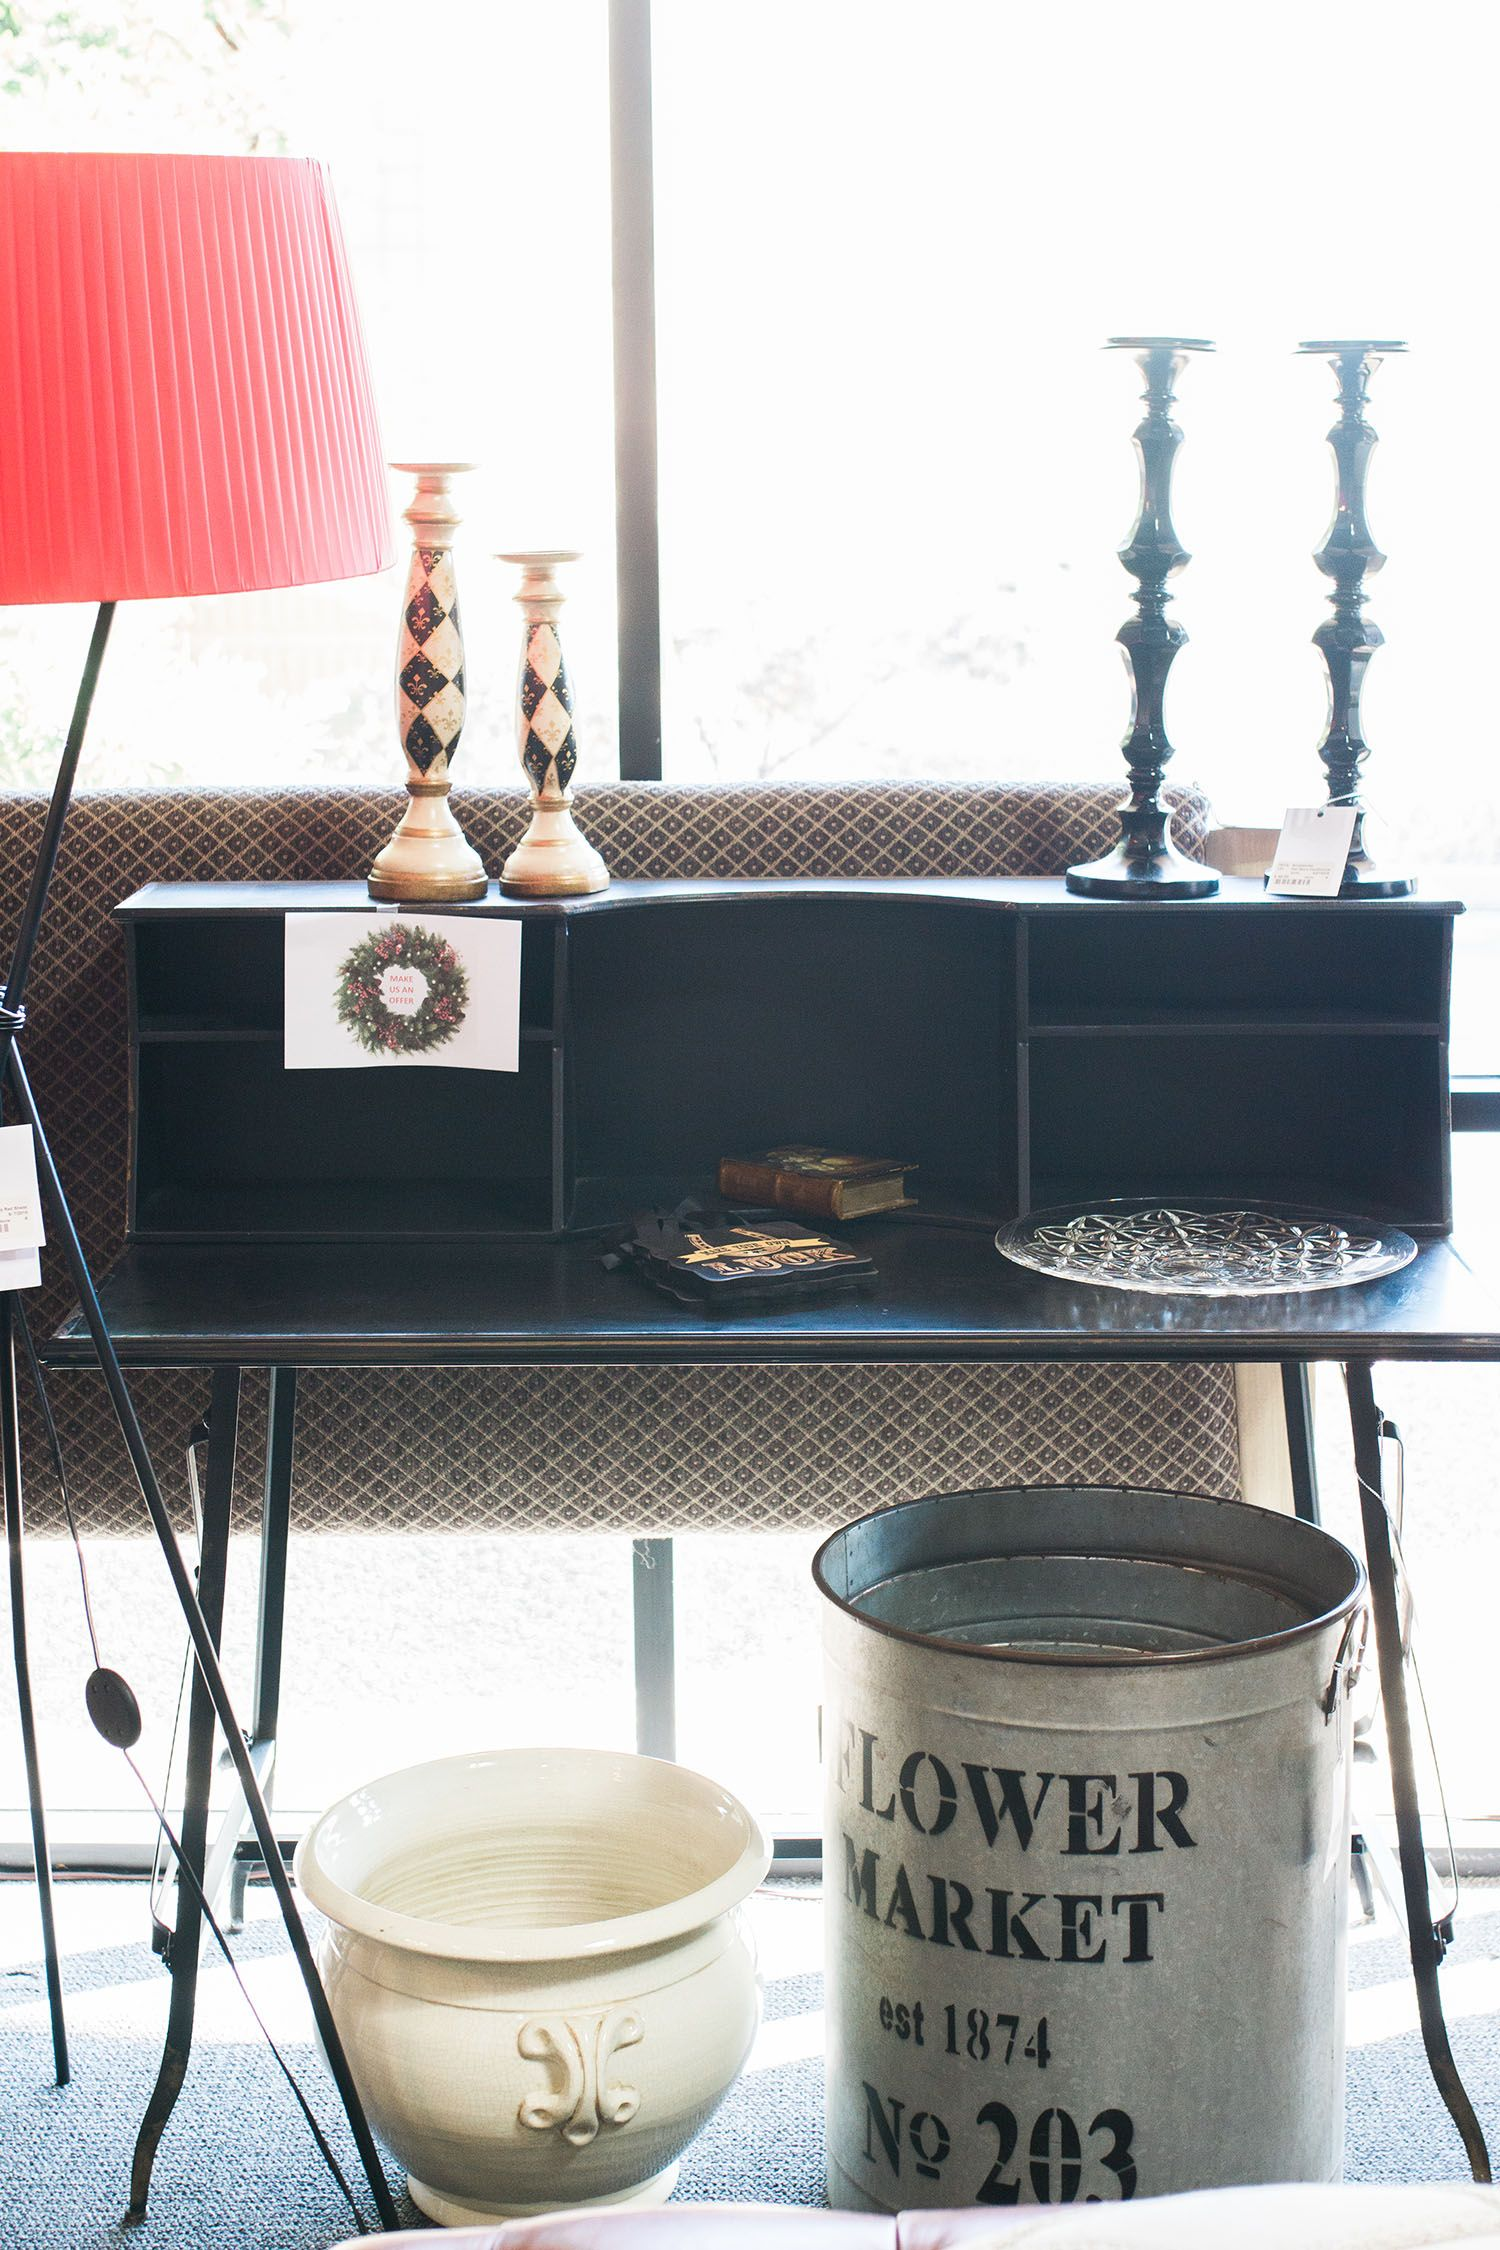 Scottsdale Furniture Consignment, Antiques, Artwork And Home Accessories.